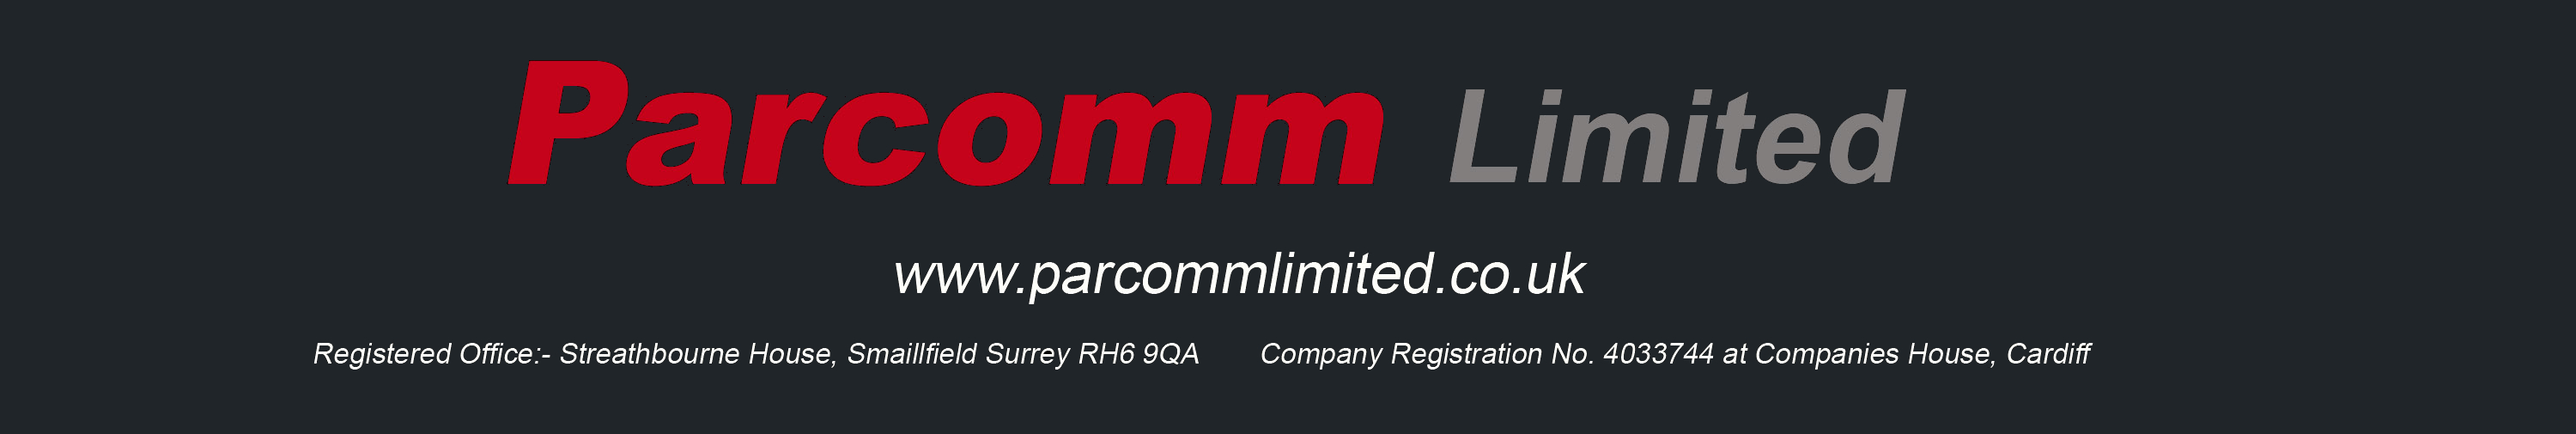 Parcomm Limited